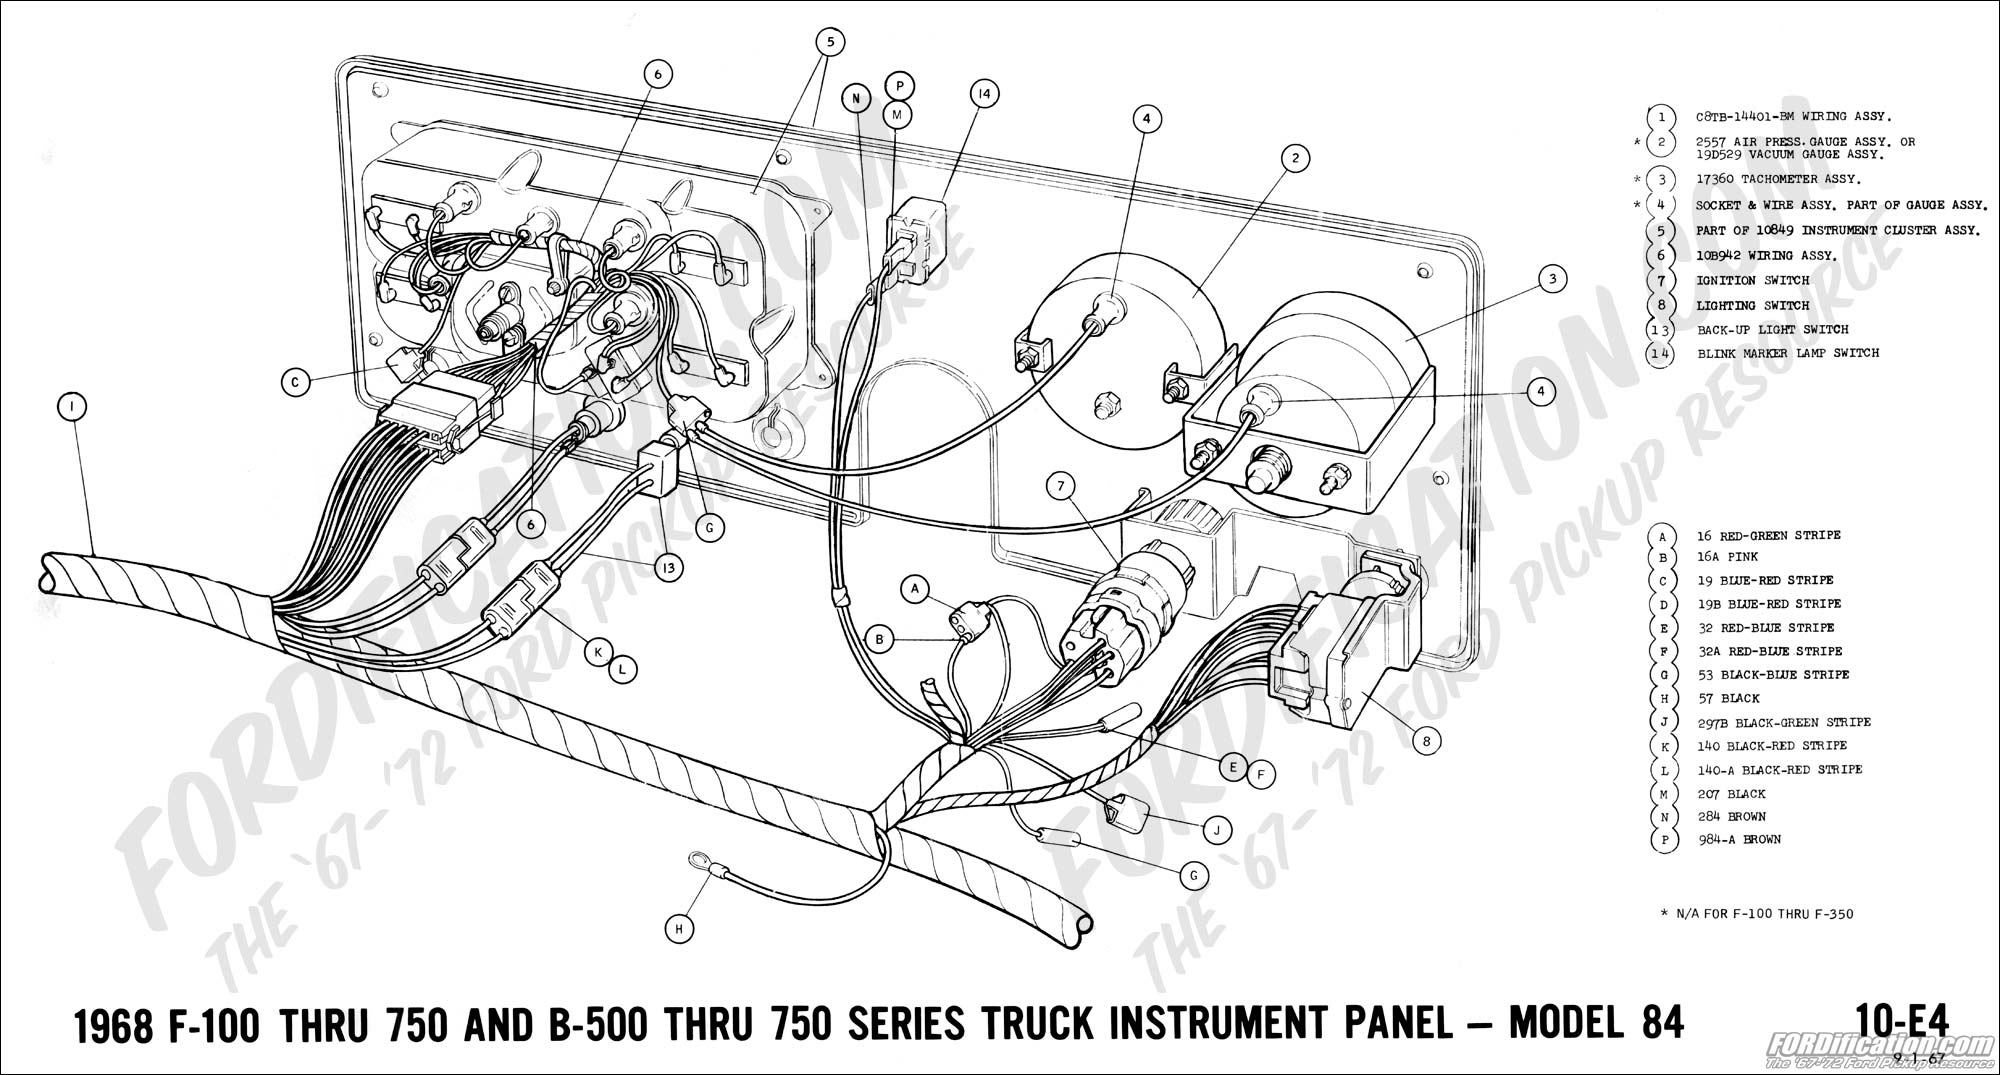 68 06 ford truck technical drawings and schematics section h wiring instrument cluster wiring diagram at eliteediting.co